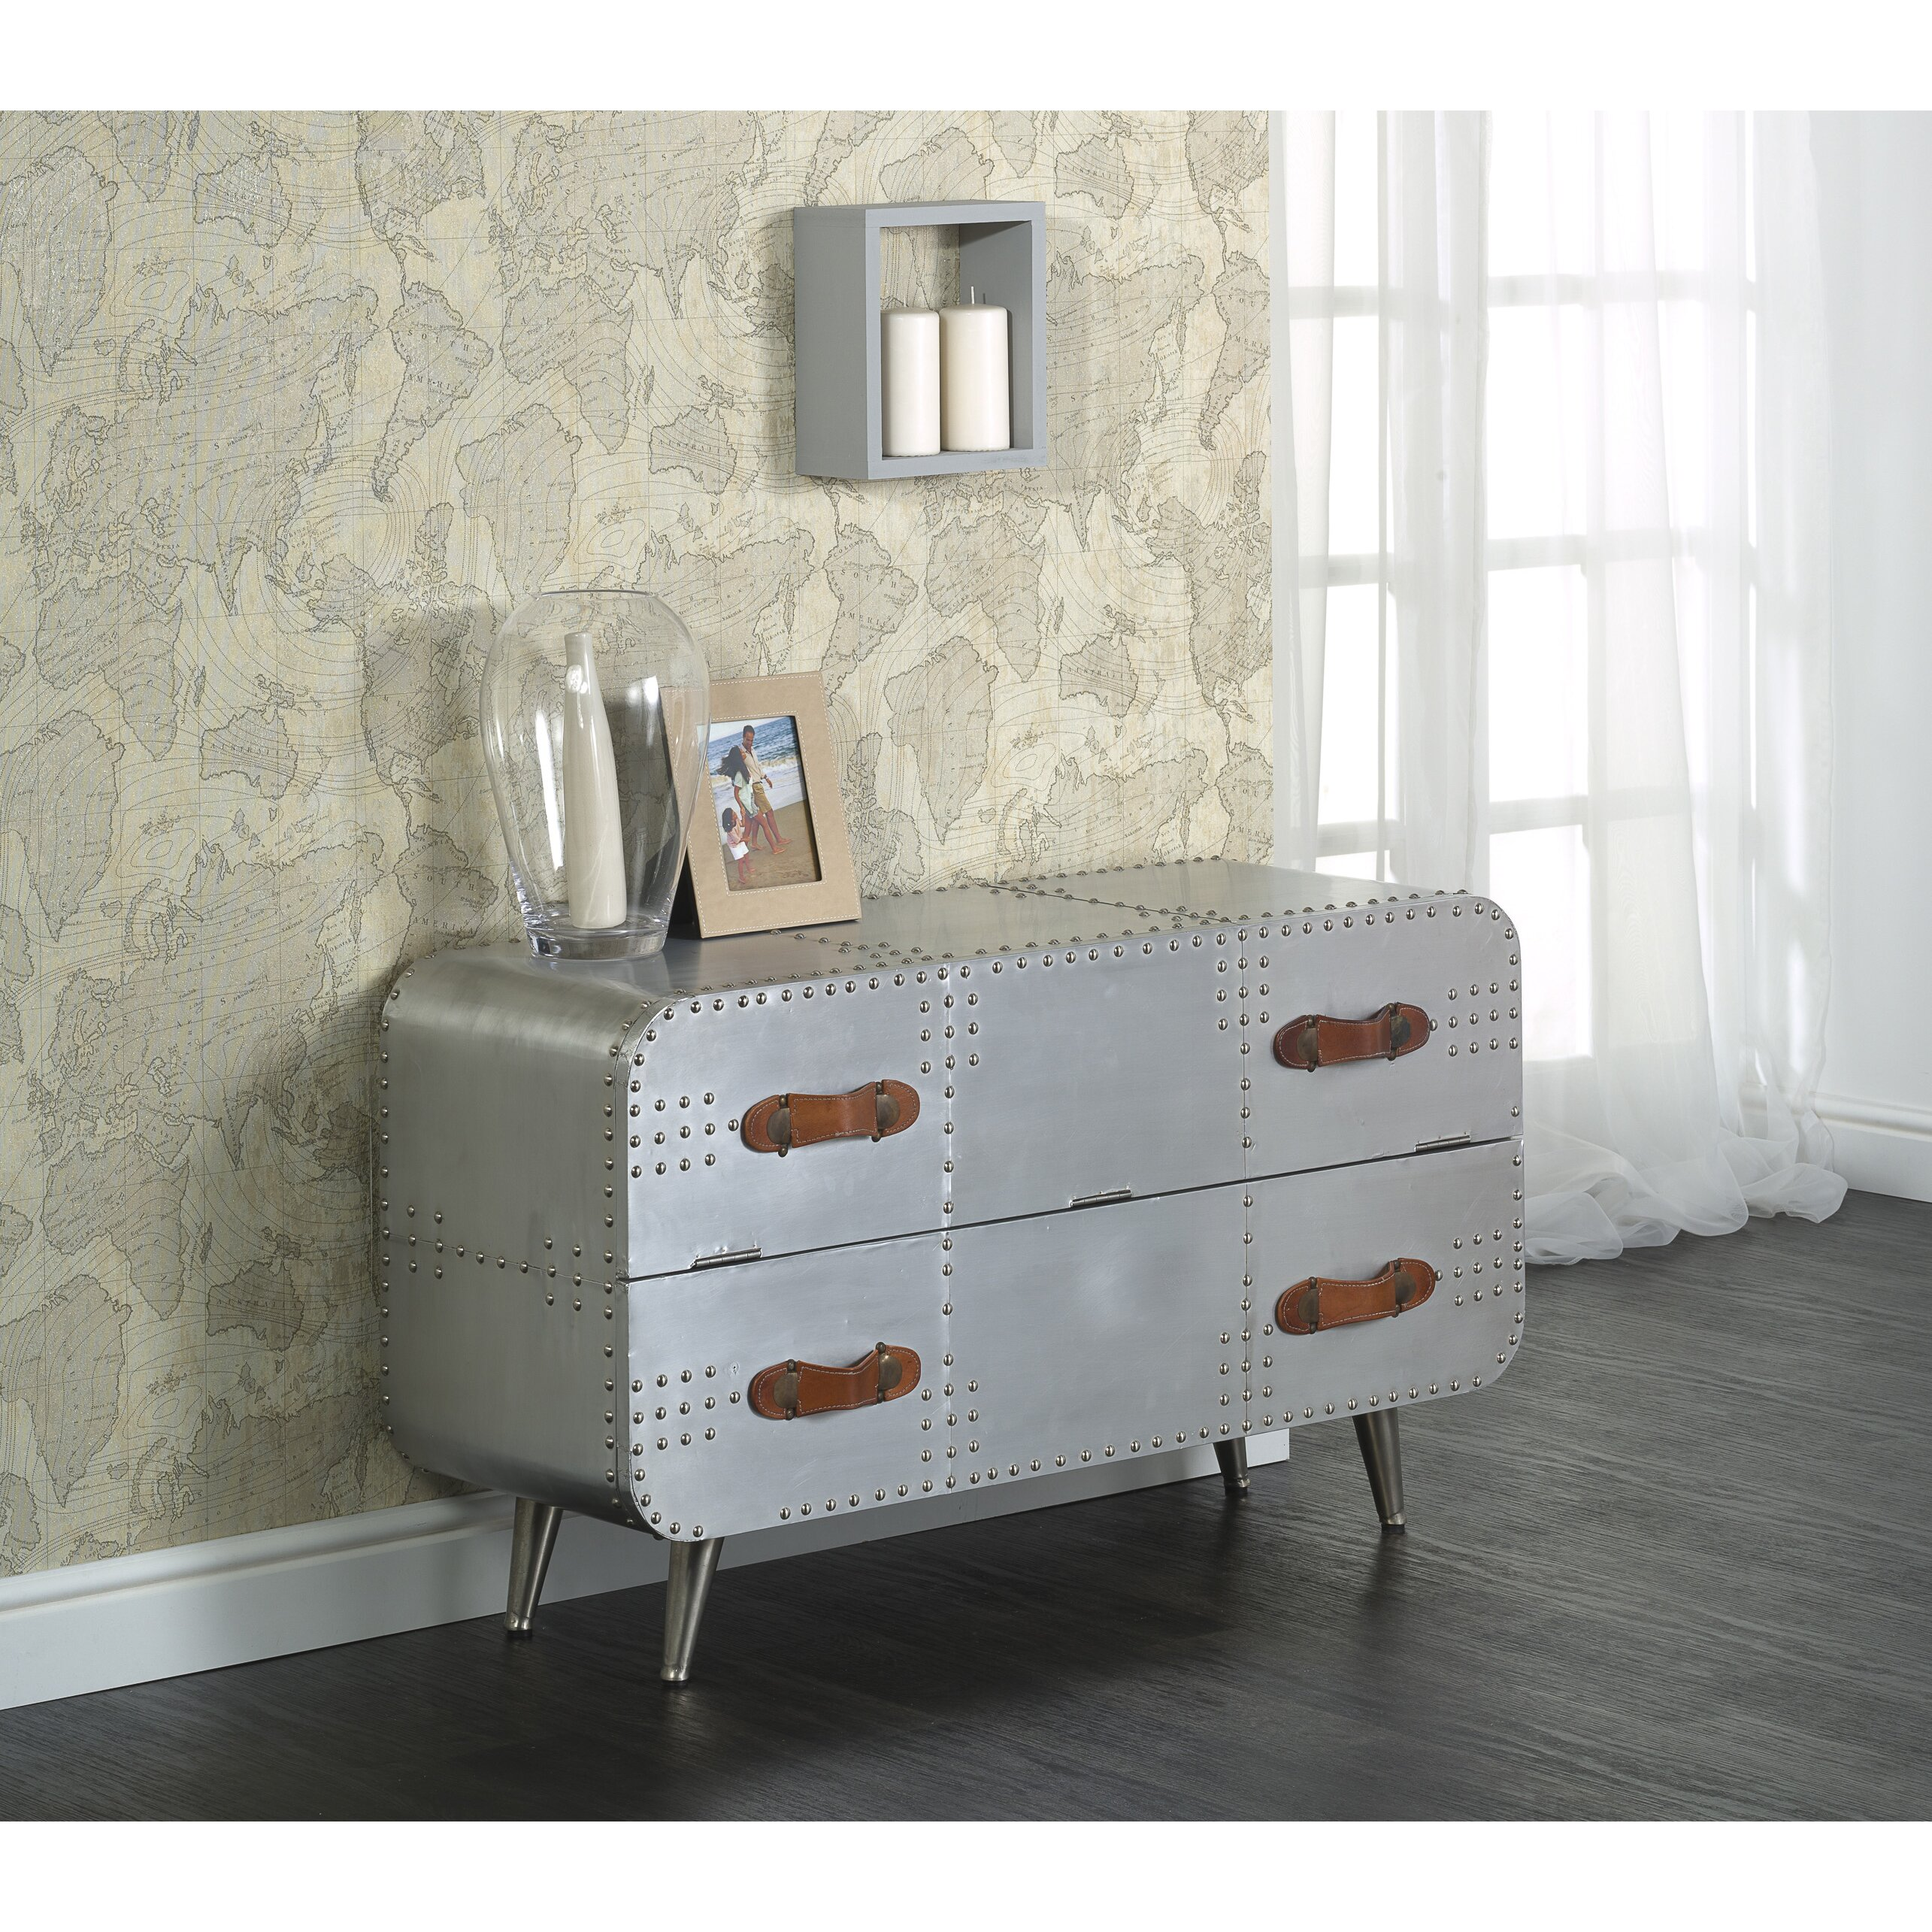 Castleton Home Voyager 1 Drawer Chest Of Drawers